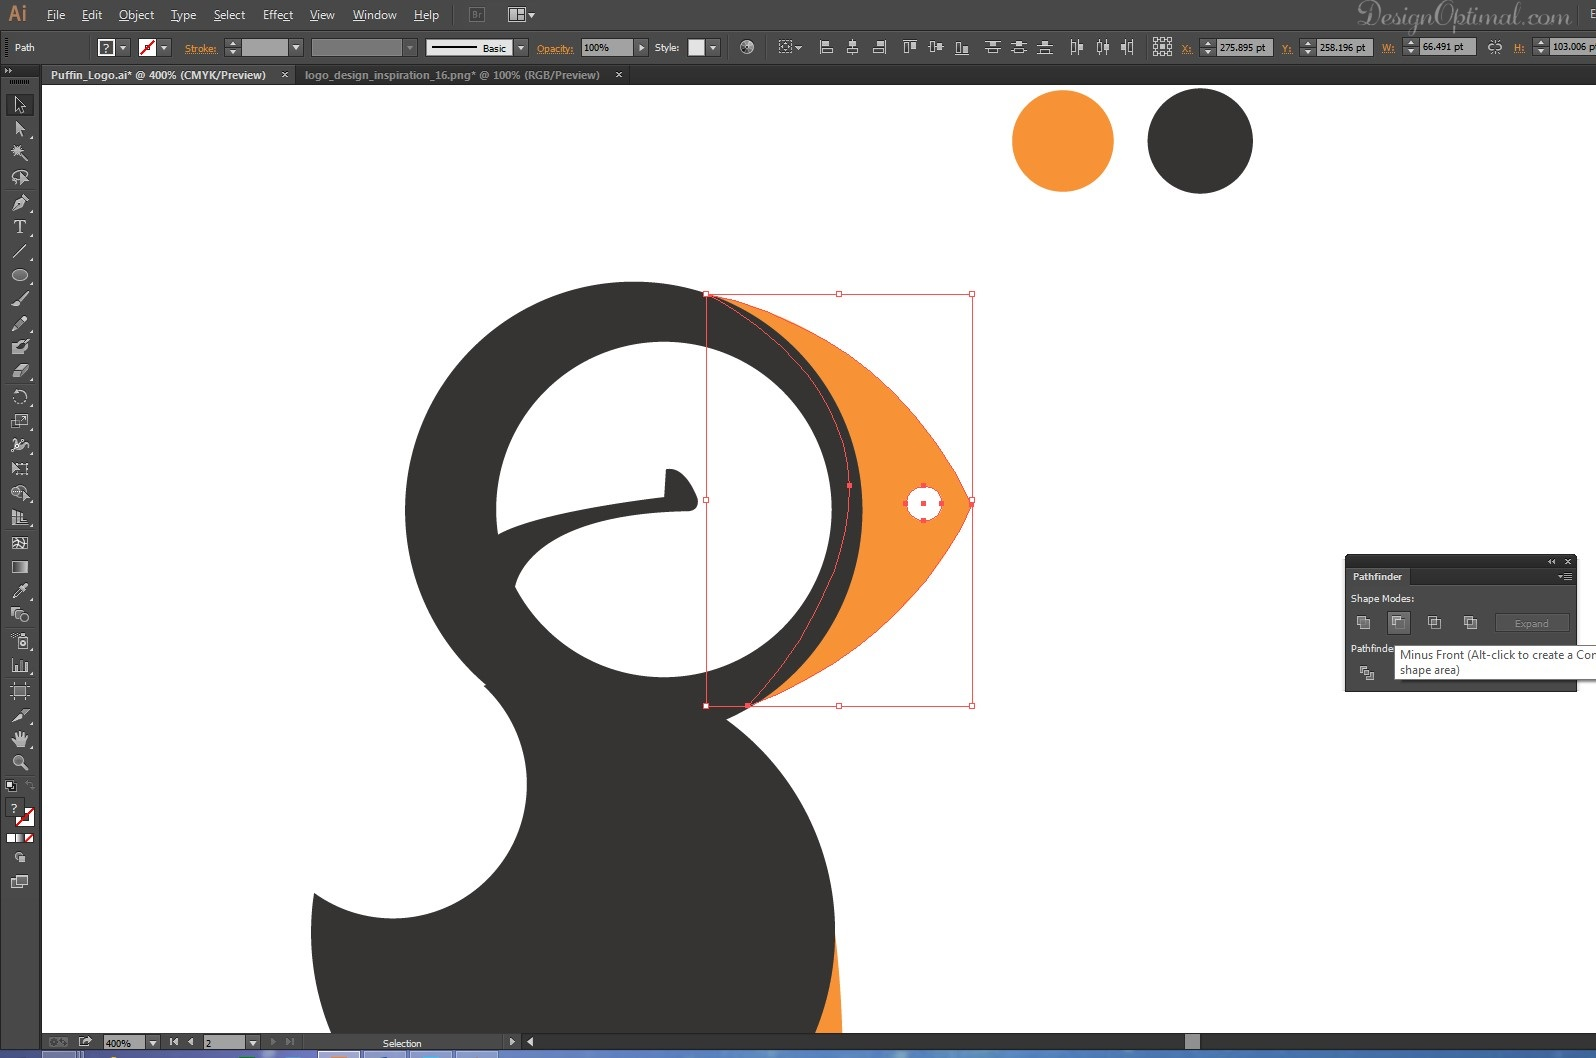 Simple Character Design Illustrator : How to create a cool and simple puffin logo using adobe illustrator